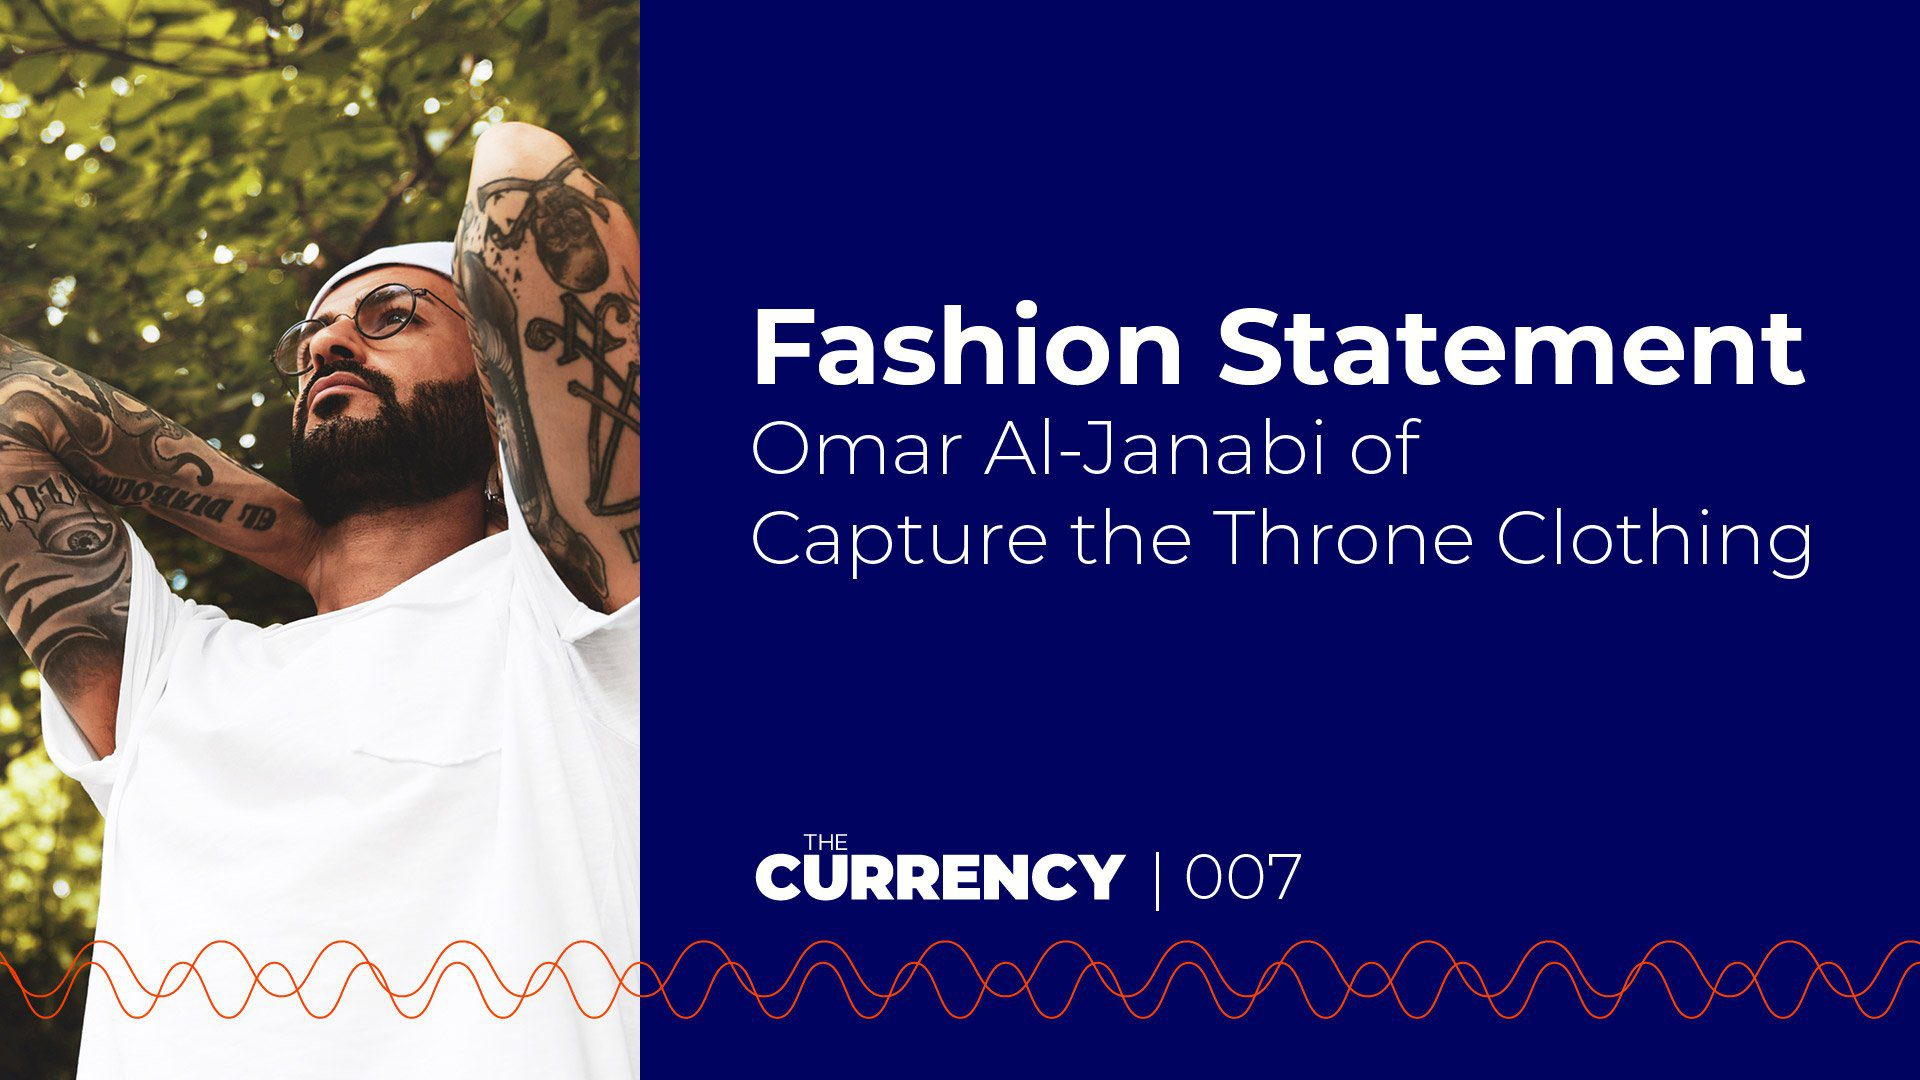 The Currency: [007] Fashion Statement with Omar Al-Janabi of Capture the Throne Clothing